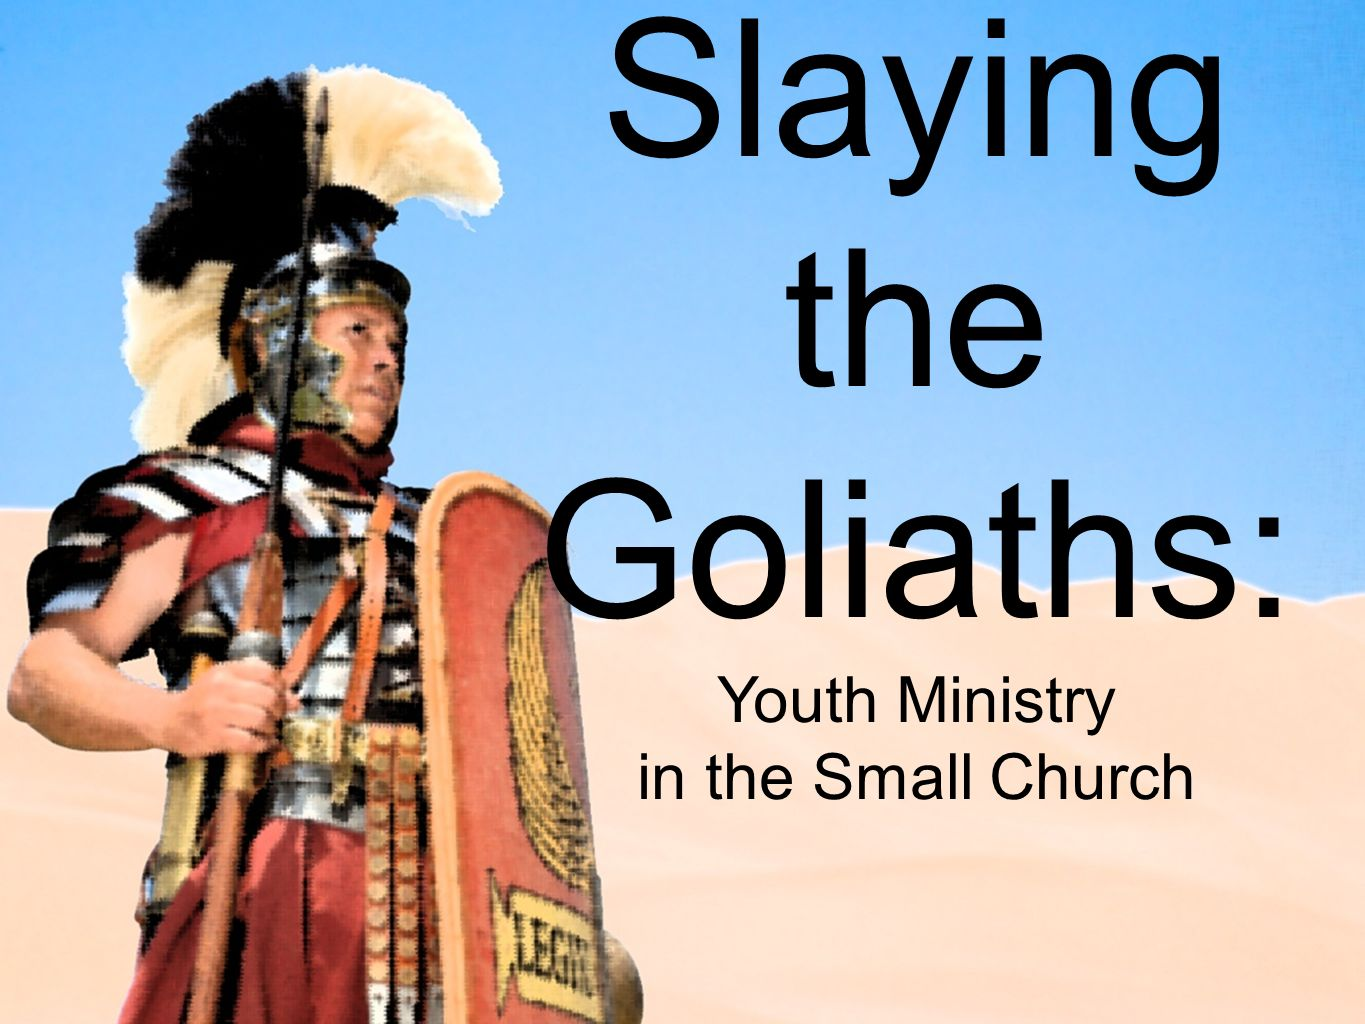 Slaying the Goliaths: Youth Ministry in the Small Church